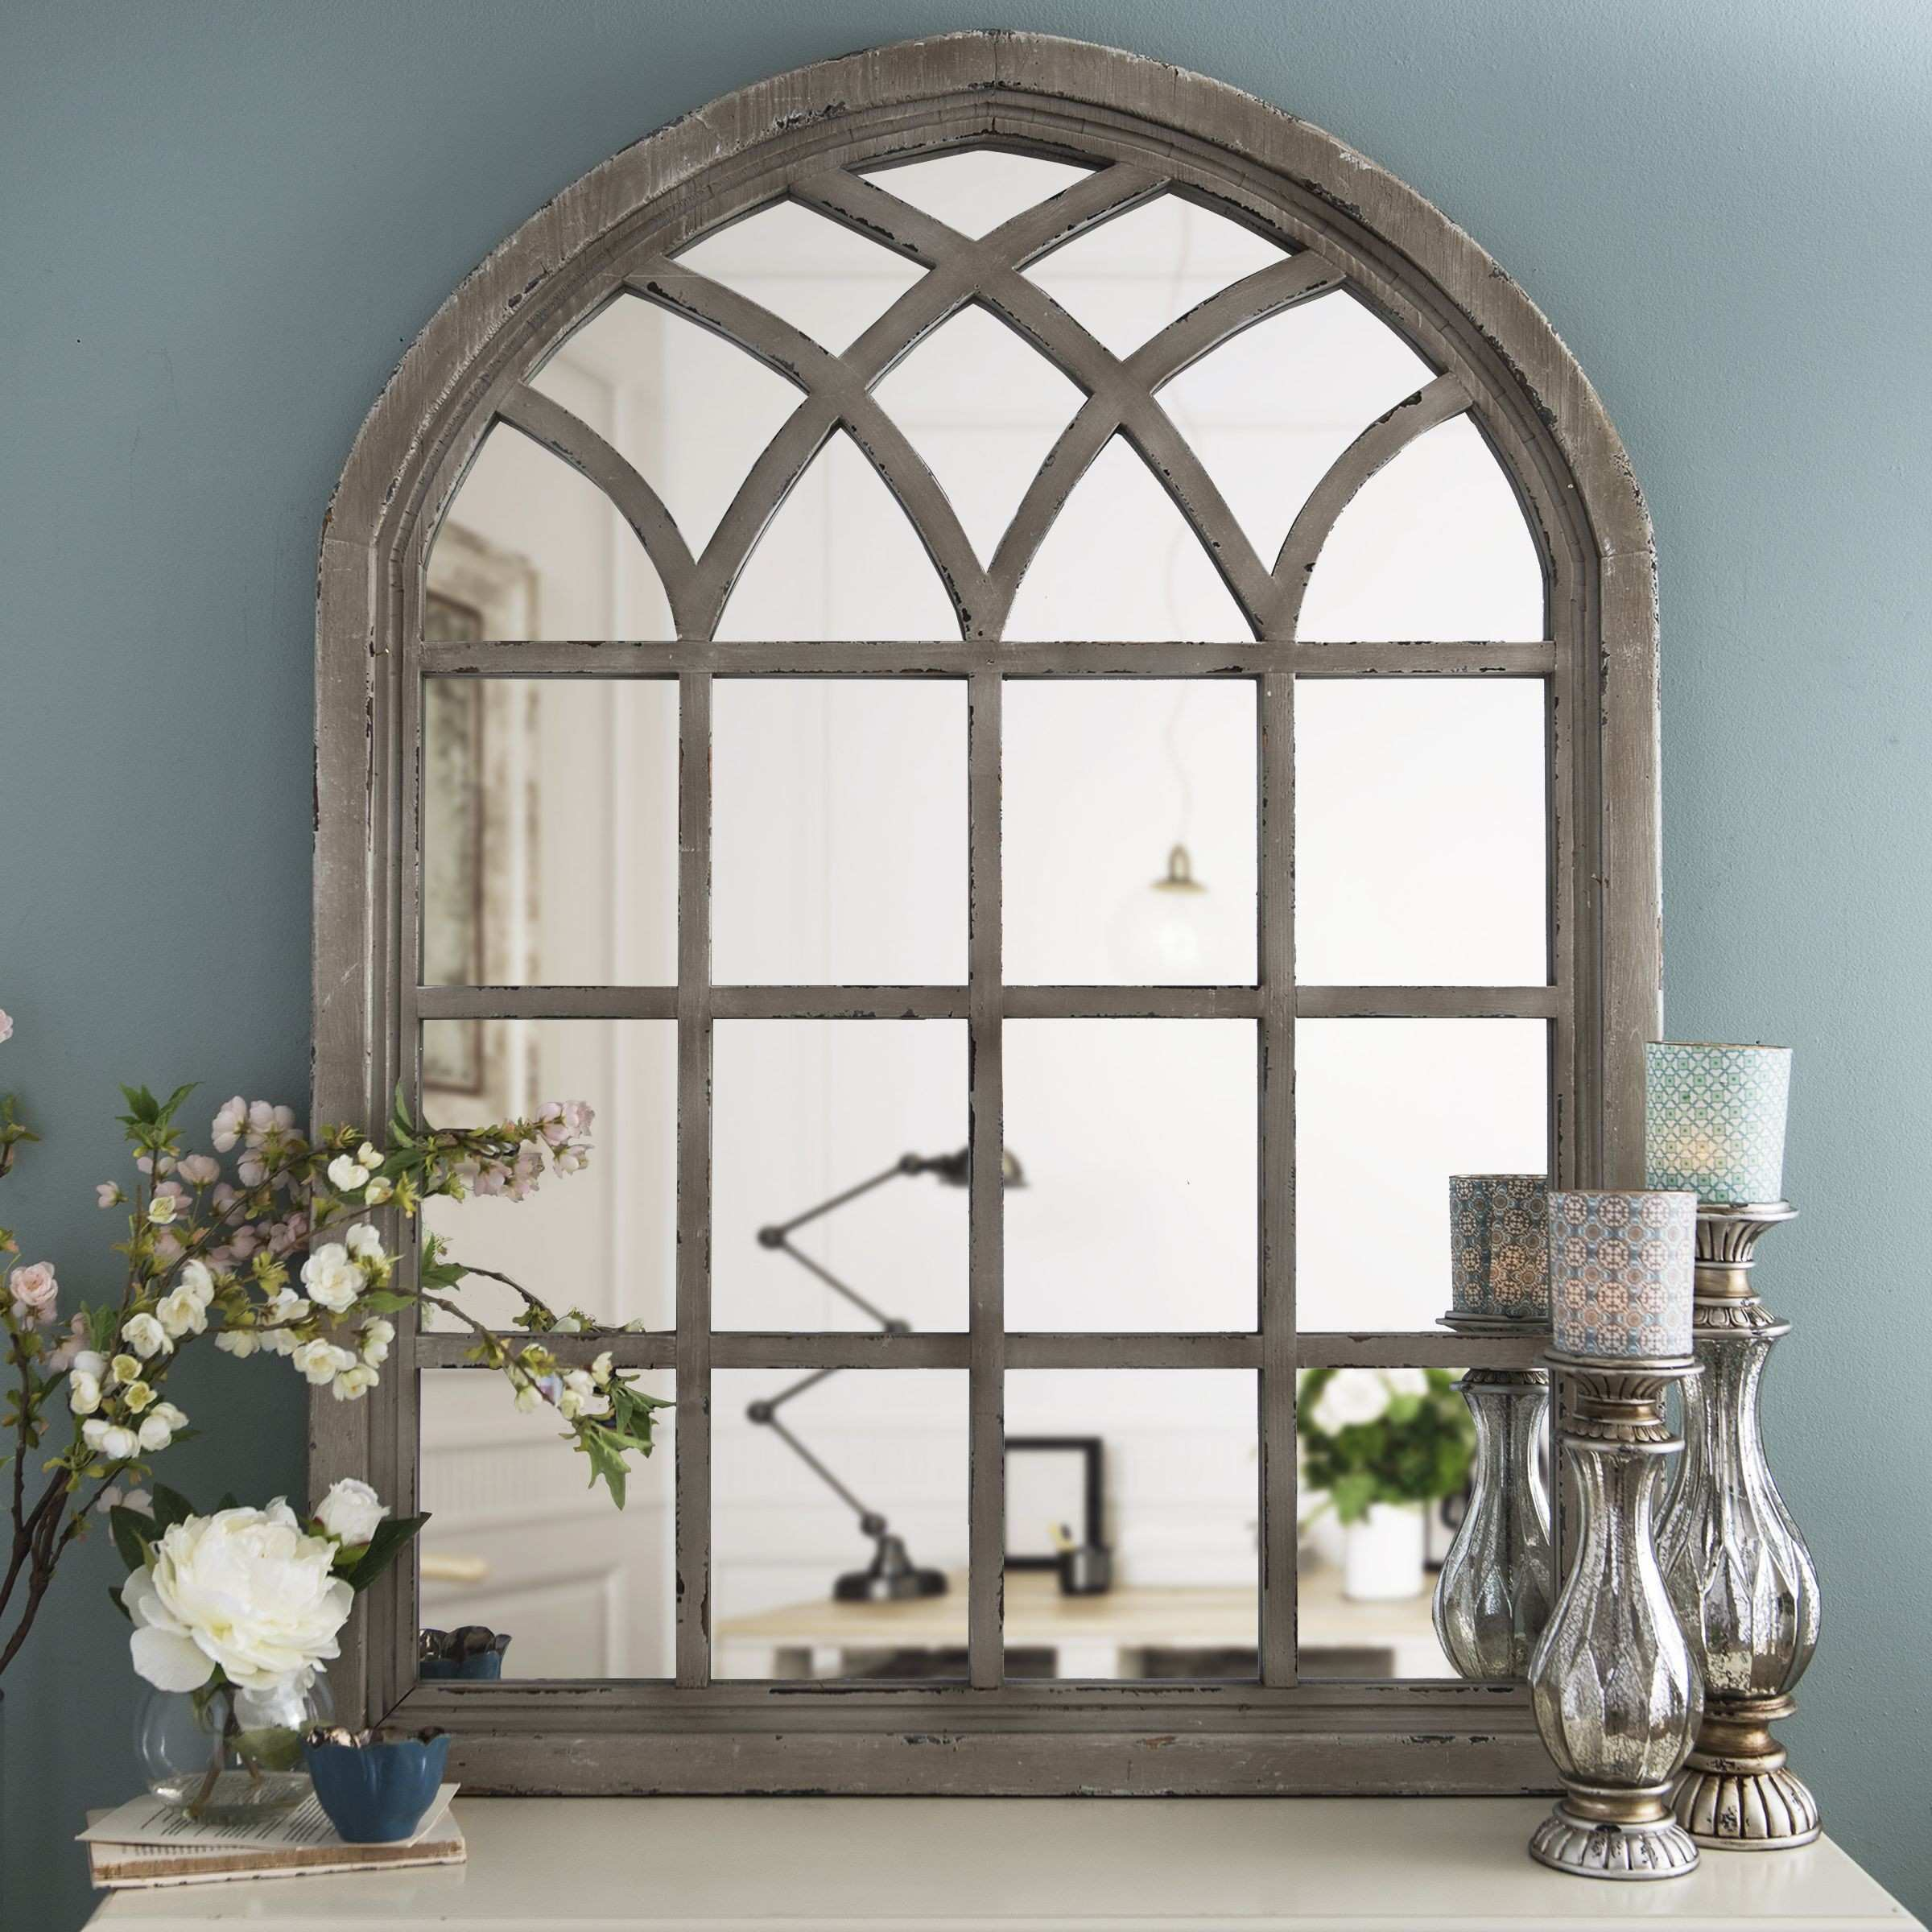 Arched Picture Frame Fresh Our Window Inspired Iron Mirror Features